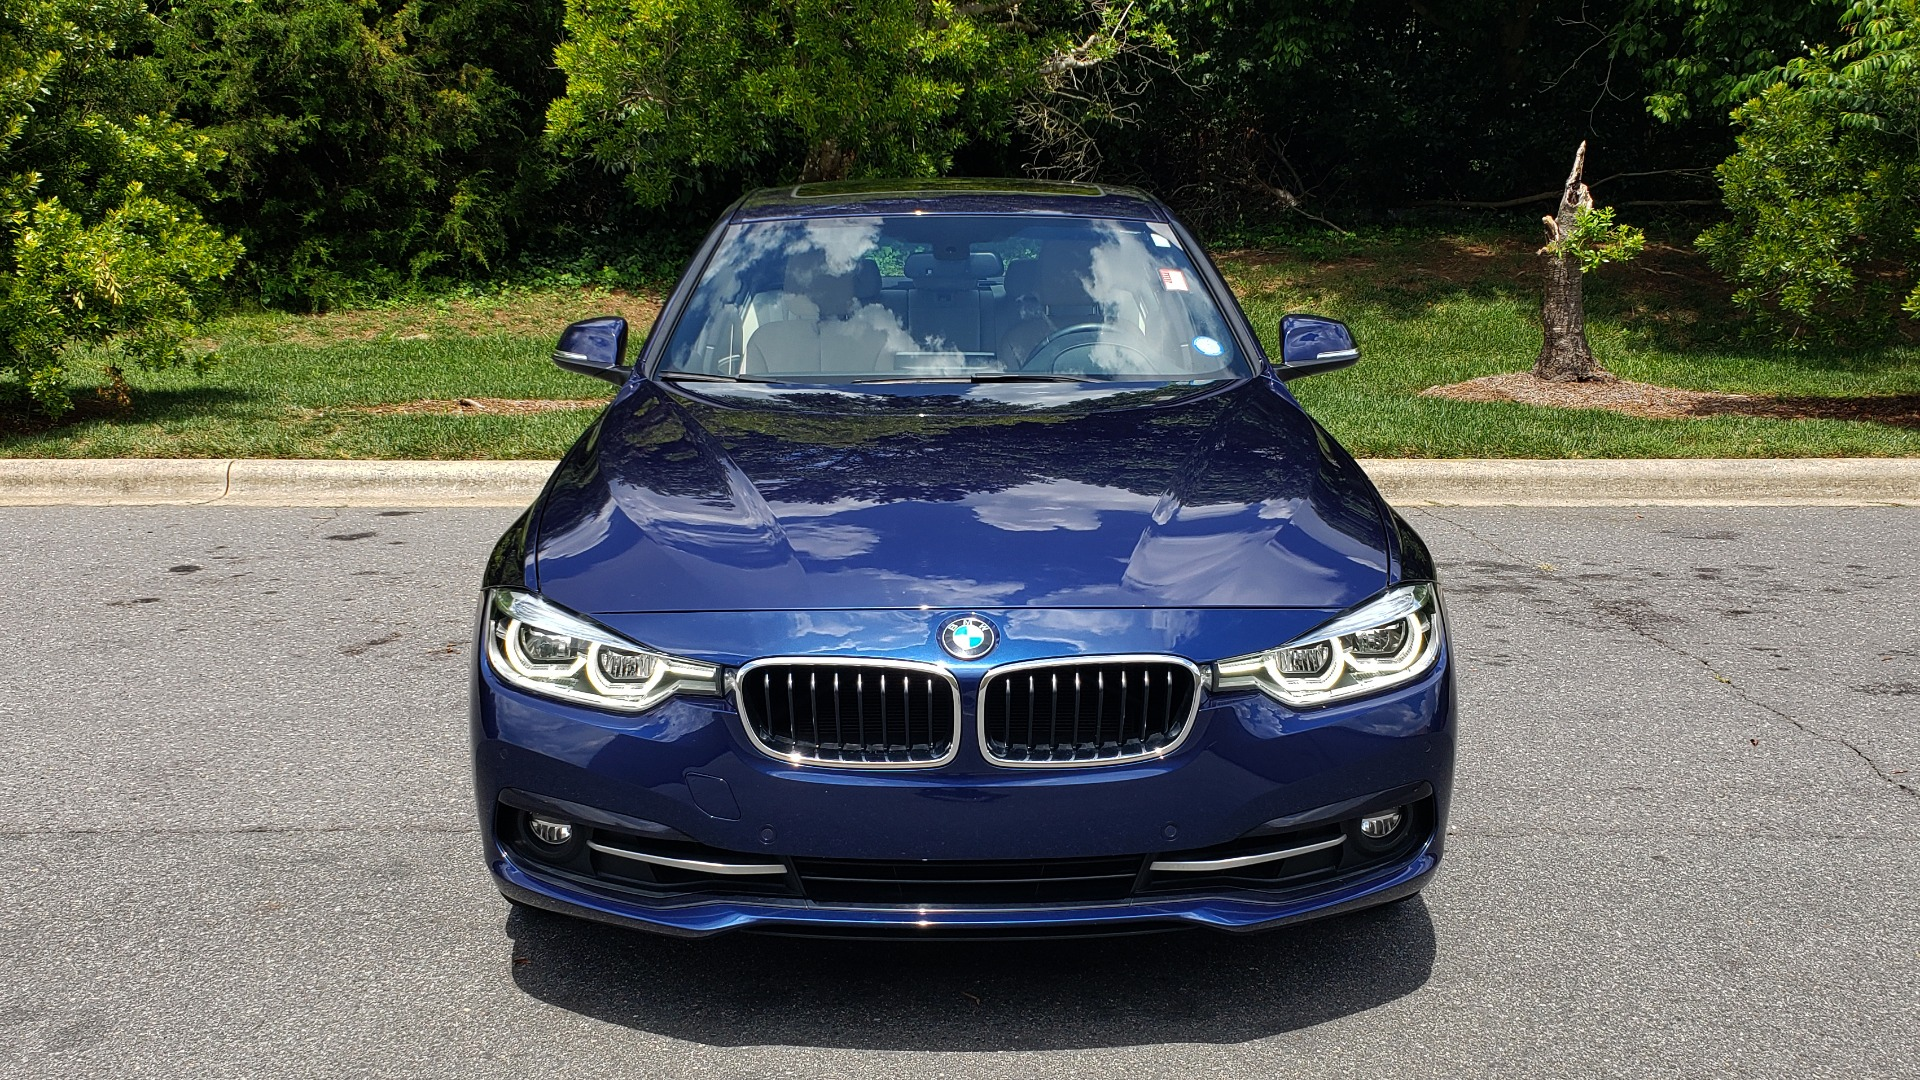 Used 2017 BMW 3 SERIES 330I PREMIUM / NAV / SUNROOF / DRVR ASST / HTD STS / REARVIEW for sale Sold at Formula Imports in Charlotte NC 28227 17